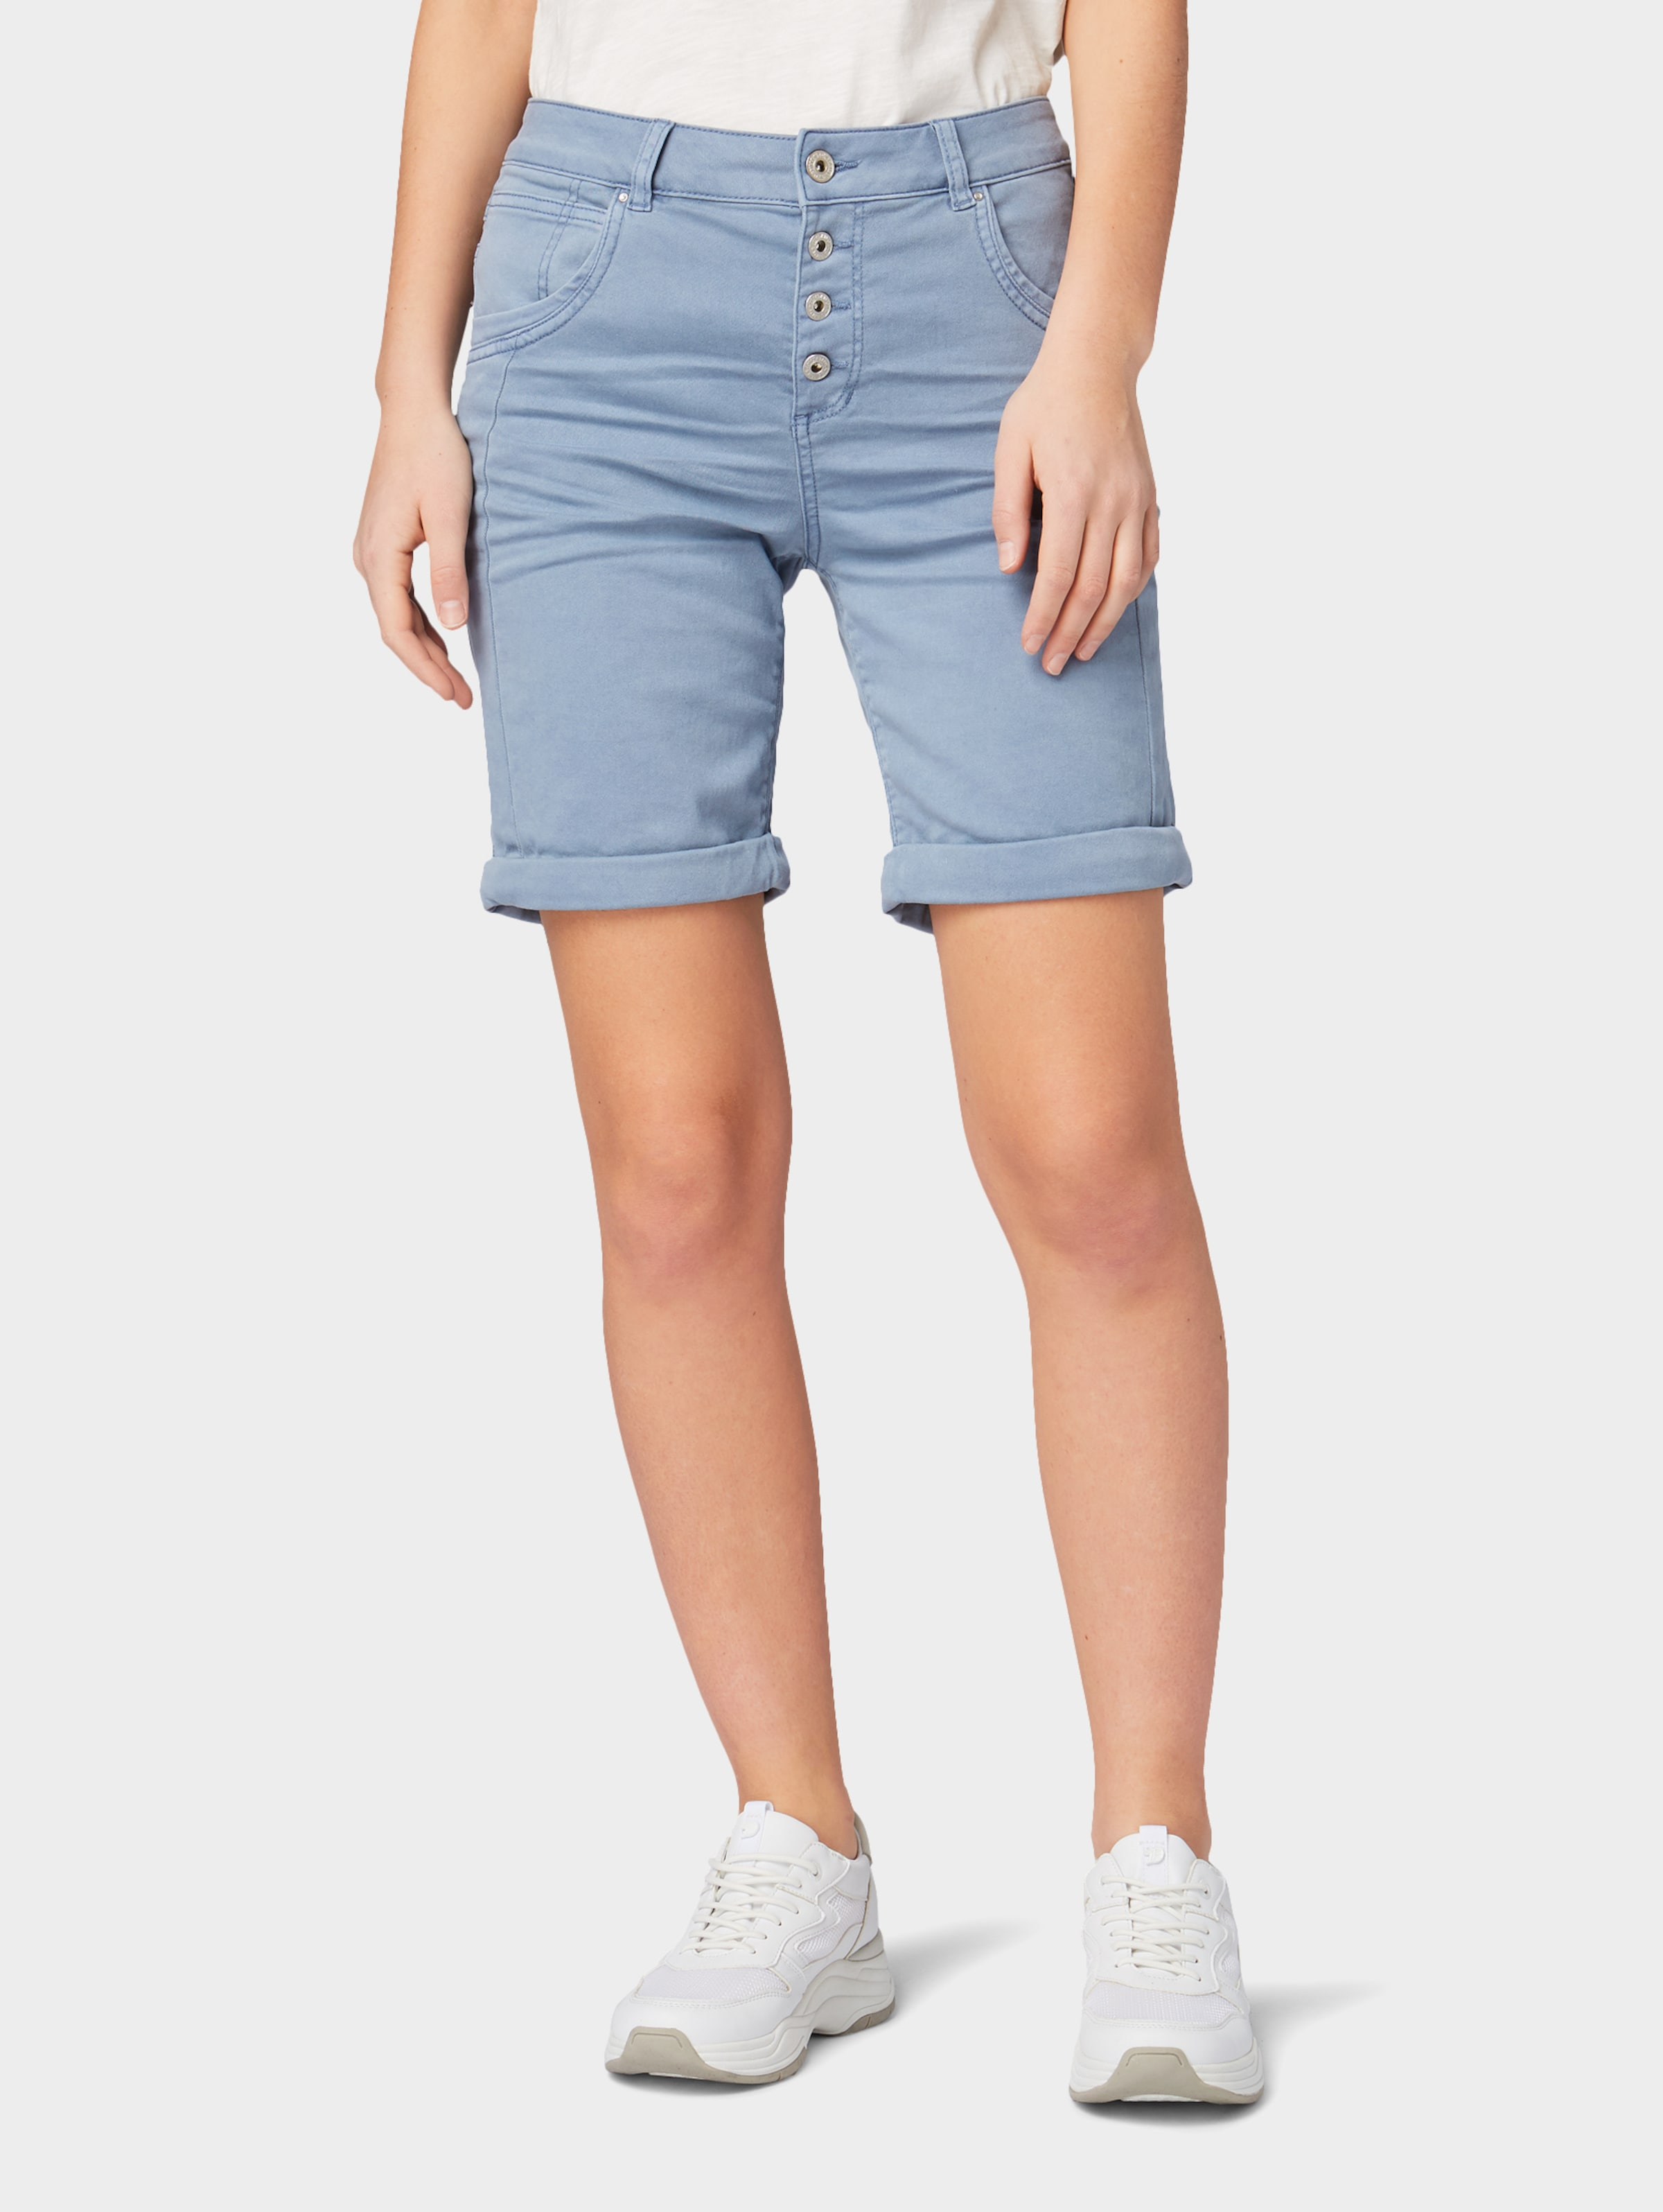 Tom Denim Tailor In Rauchblau Short 'lina' qUpMzVLSG